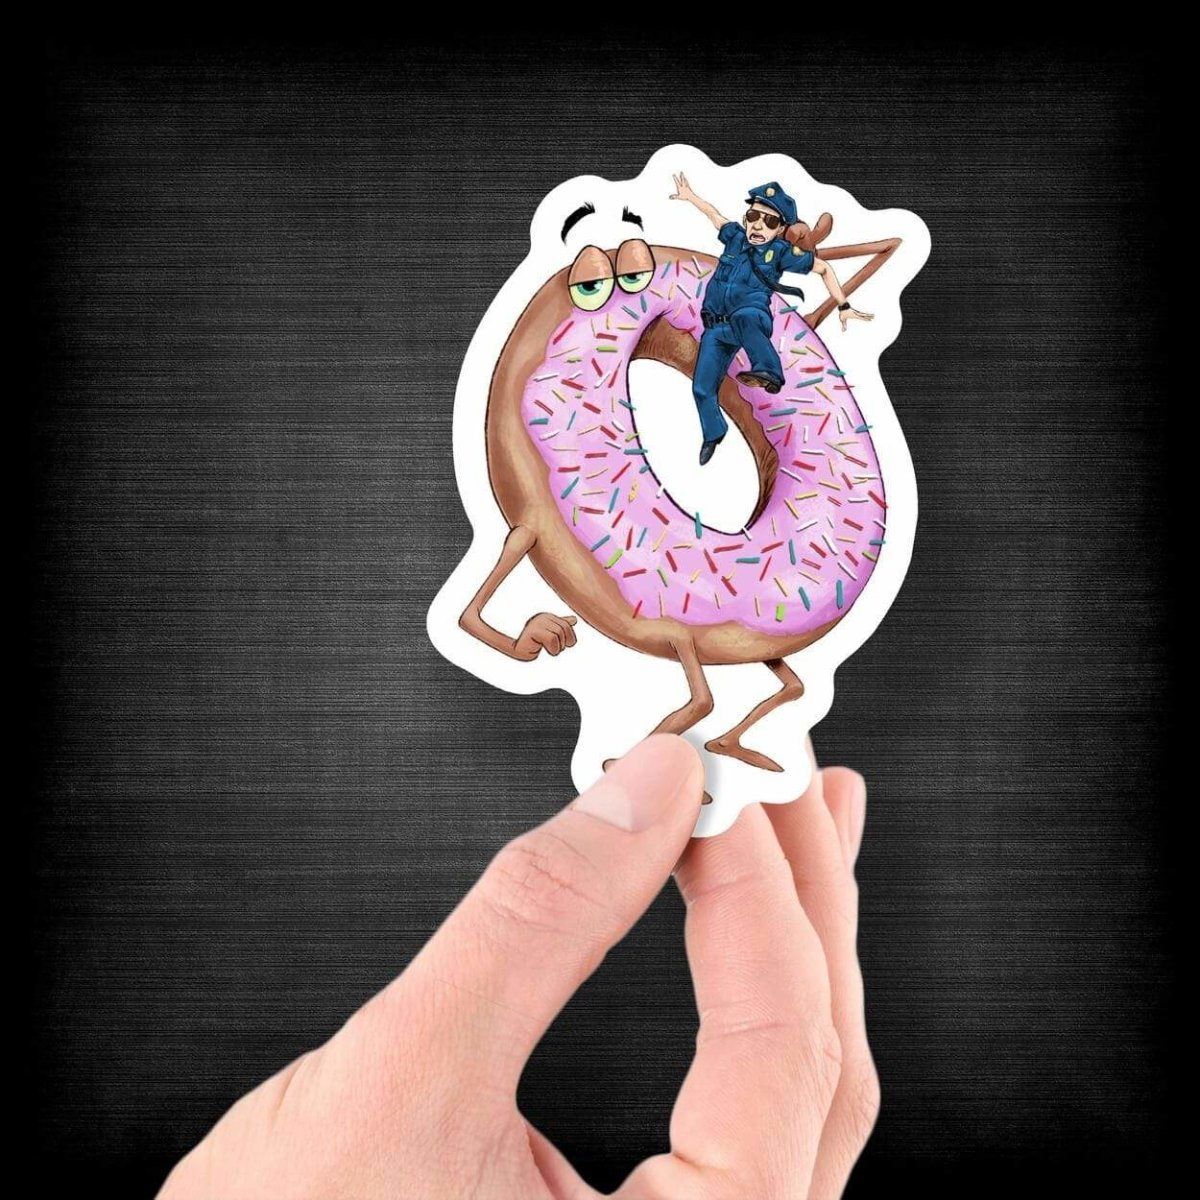 Donut Eating a Cop - Vinyl Sticker - Dan Pearce Sticker Shop